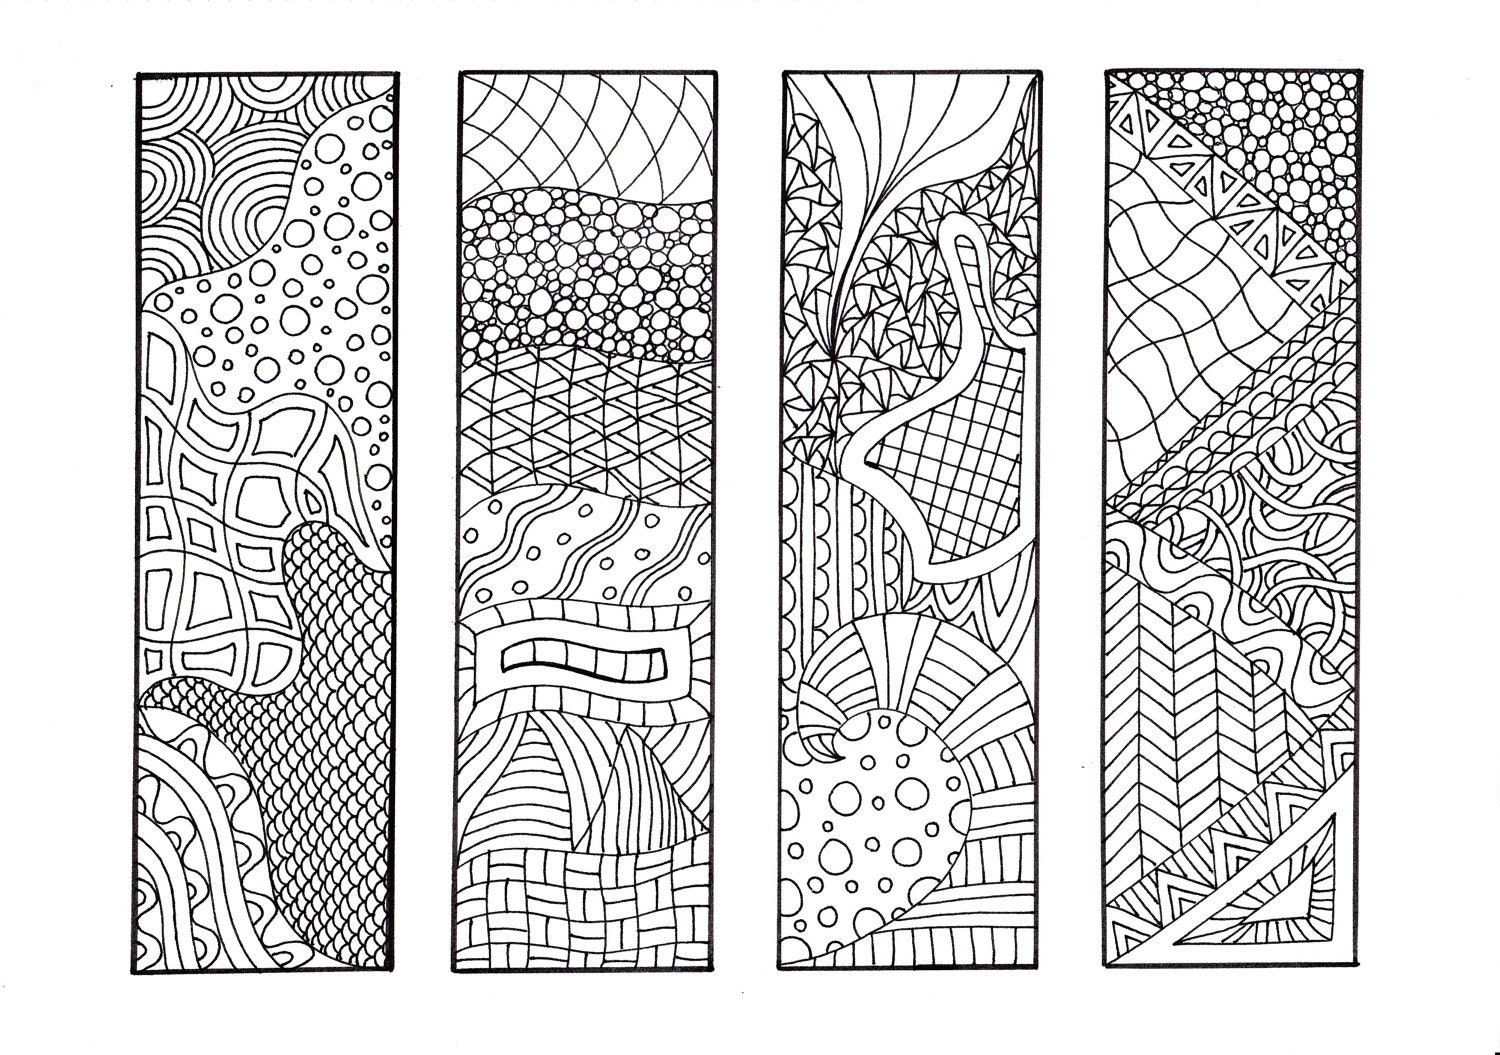 Zendoodle Printable Bookmarks DIY Zentangle Inspired Coloring